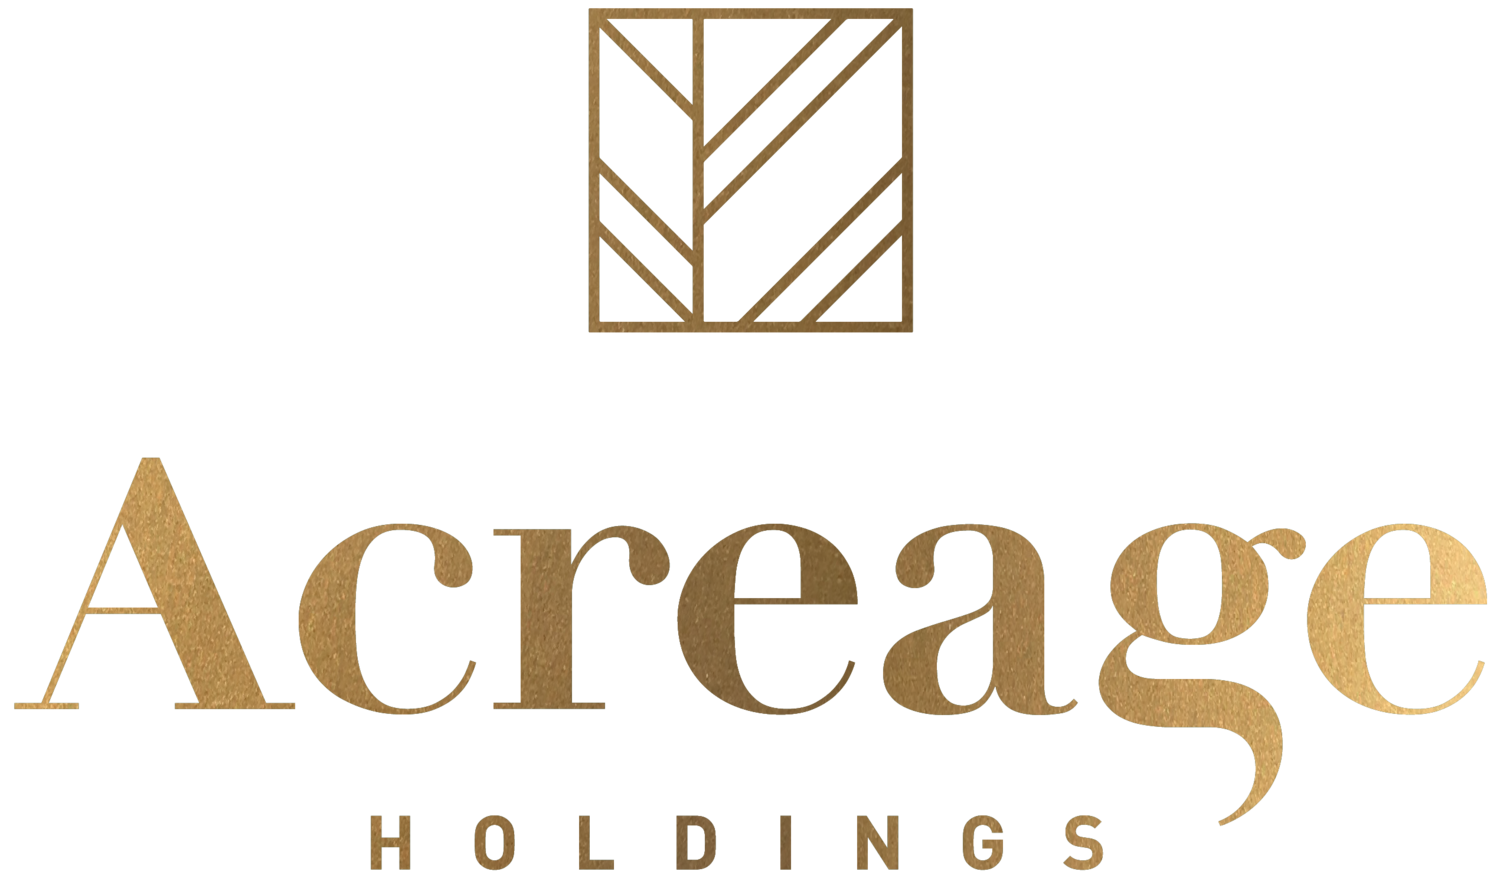 Acreage Holdings - Marijuana & Cannabis Investment Firm & Startup Funding